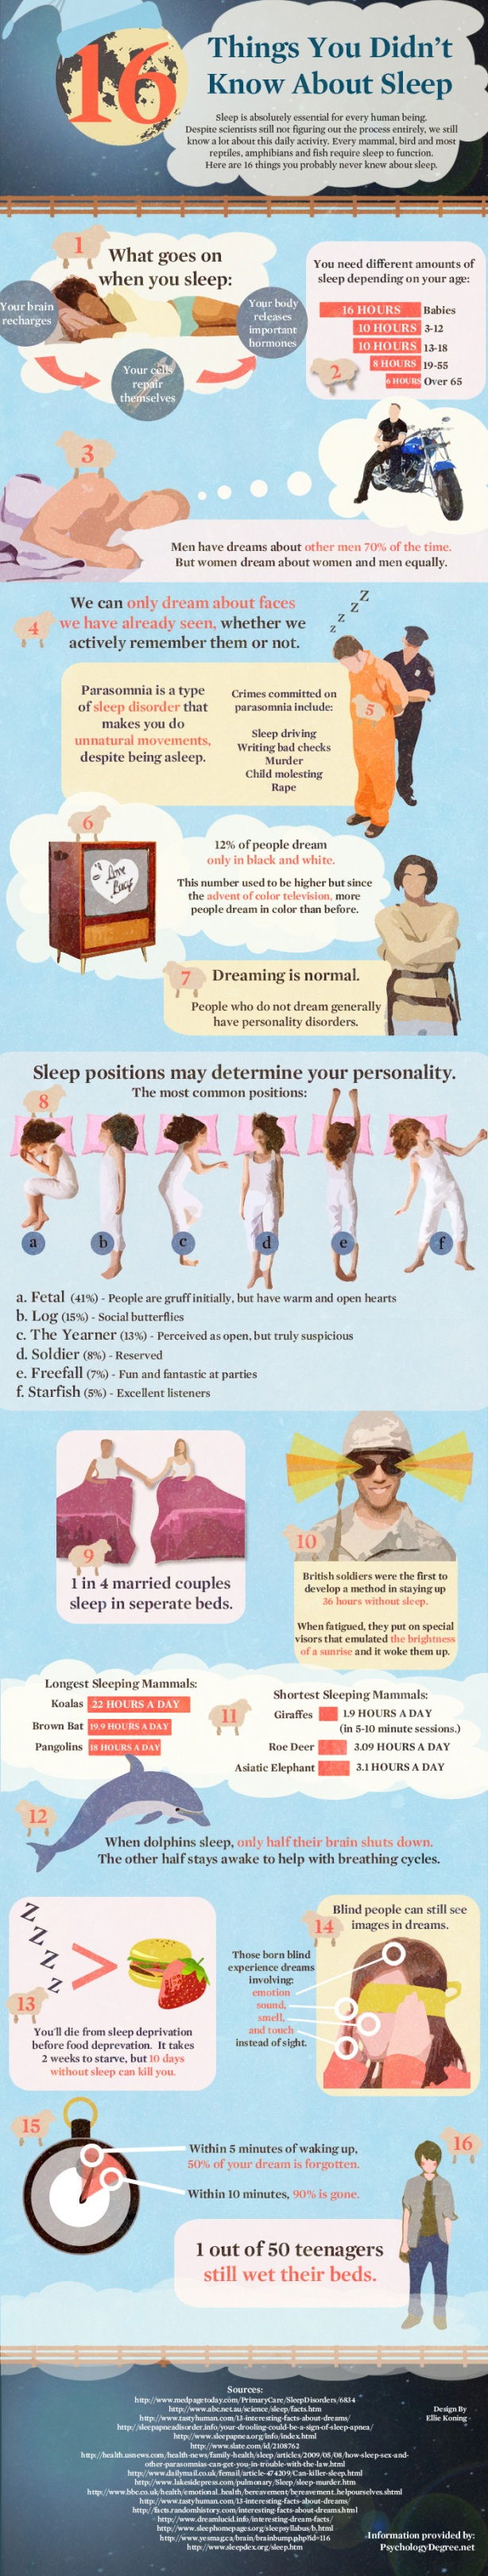 parasomnia essay This essay will start with describing normal sleep physiology since this is crucial  for  parasomnias, rem sleep behavioural disorder (rbd) and sleep walking.